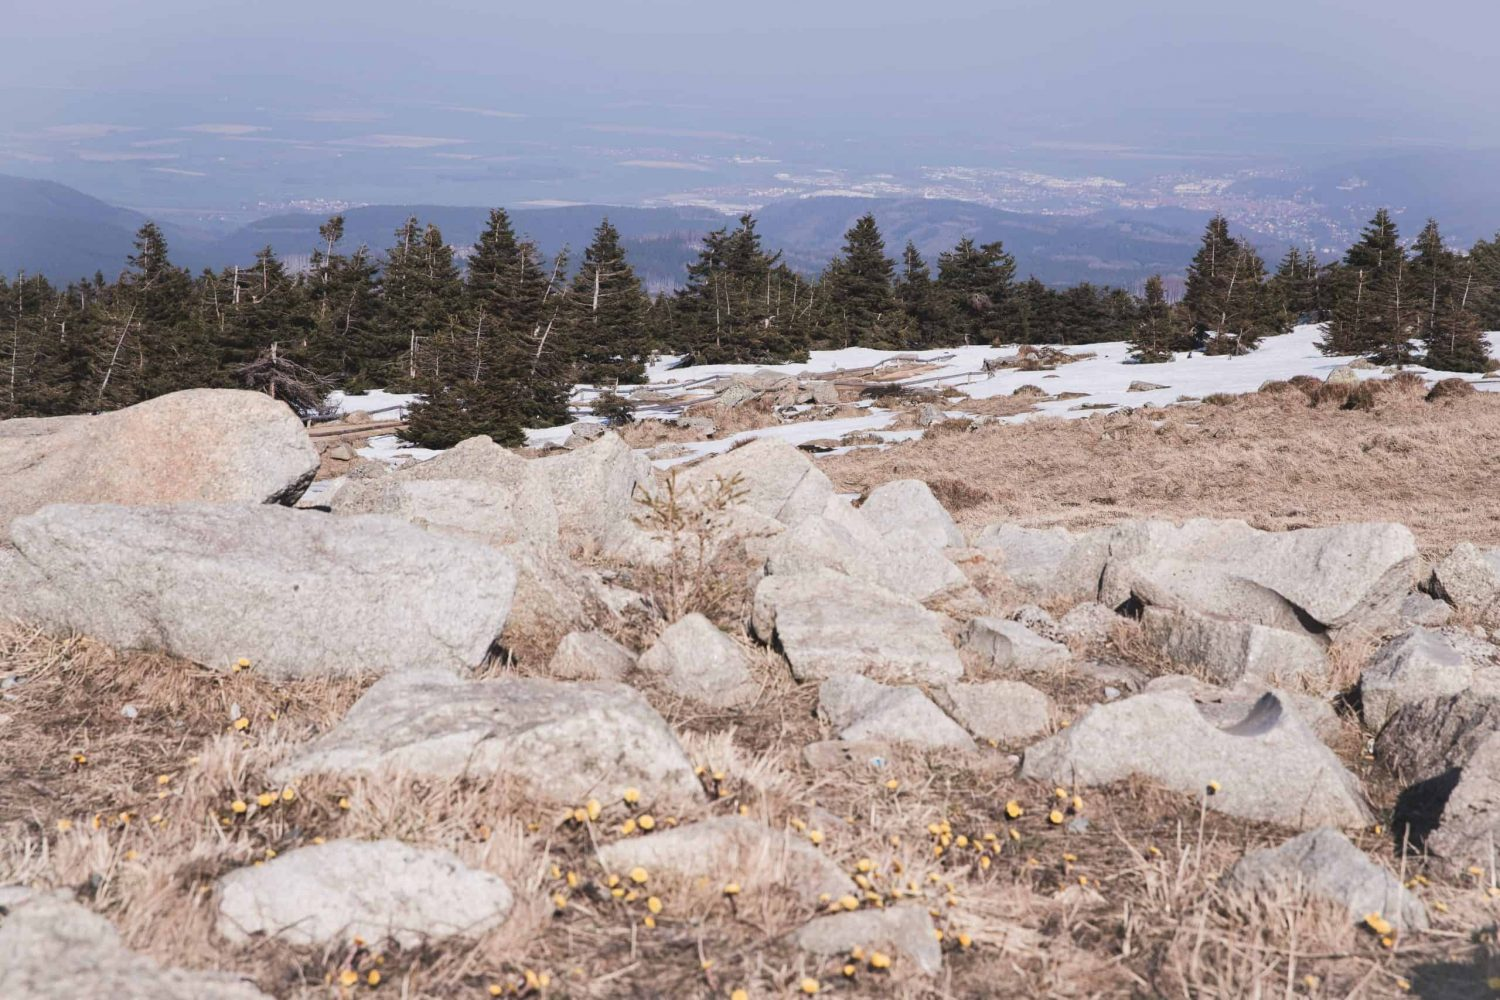 The view from the top of Brocken in the Harz Mountains in Harz National Park